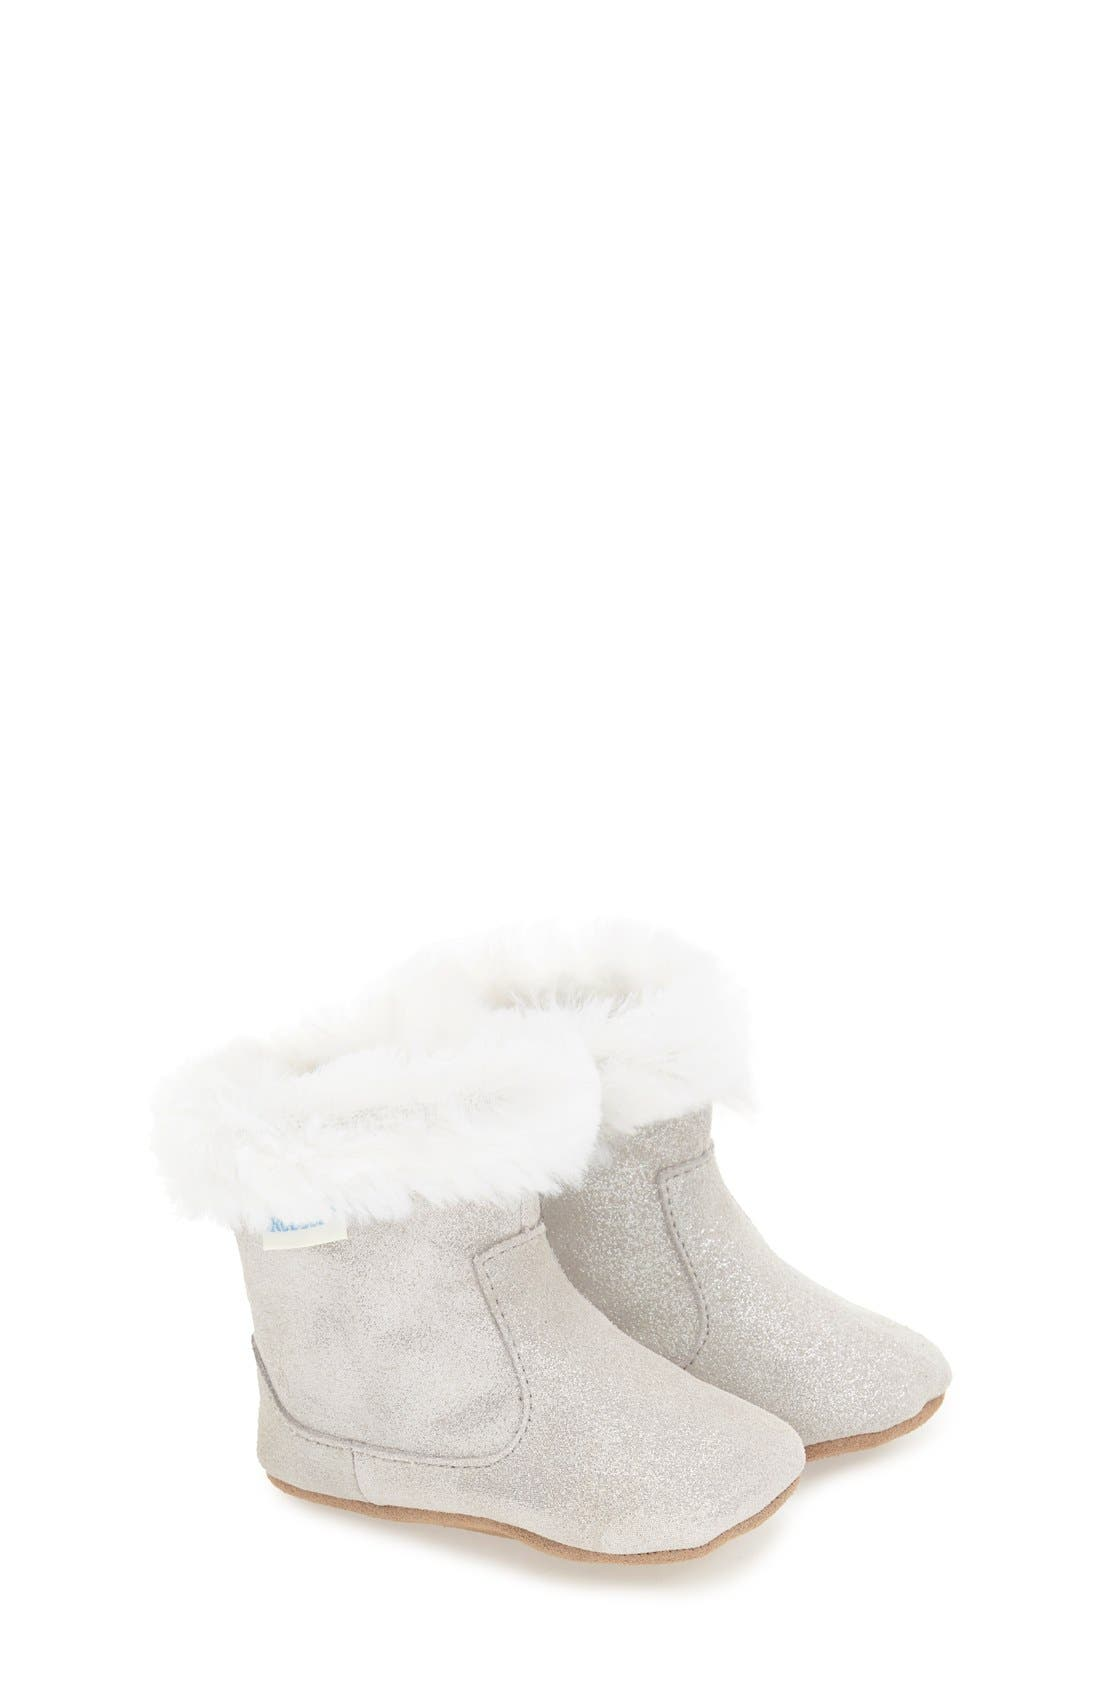 'Thea Twinkle' Bootie,                             Main thumbnail 1, color,                             Grey Sparkle Suede